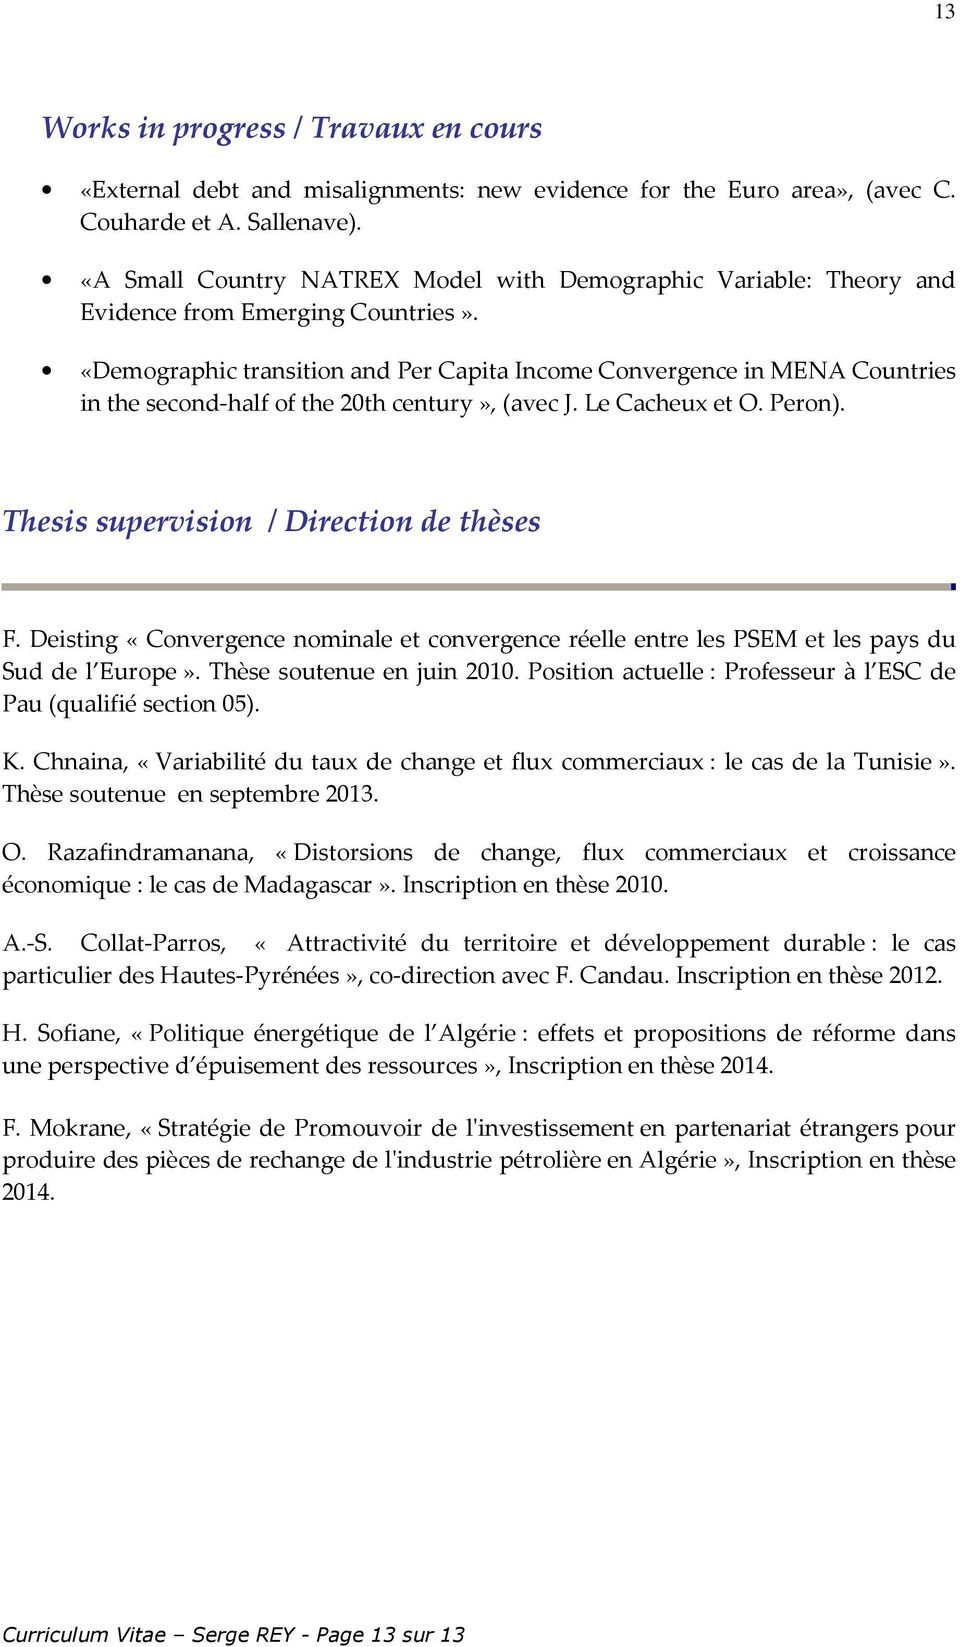 «Demographic transition and Per Capita Income Convergence in MENA Countries in the second-half of the 20th century», (avec J. Le Cacheux et O. Peron). Thesis supervision / Direction de thèses F.